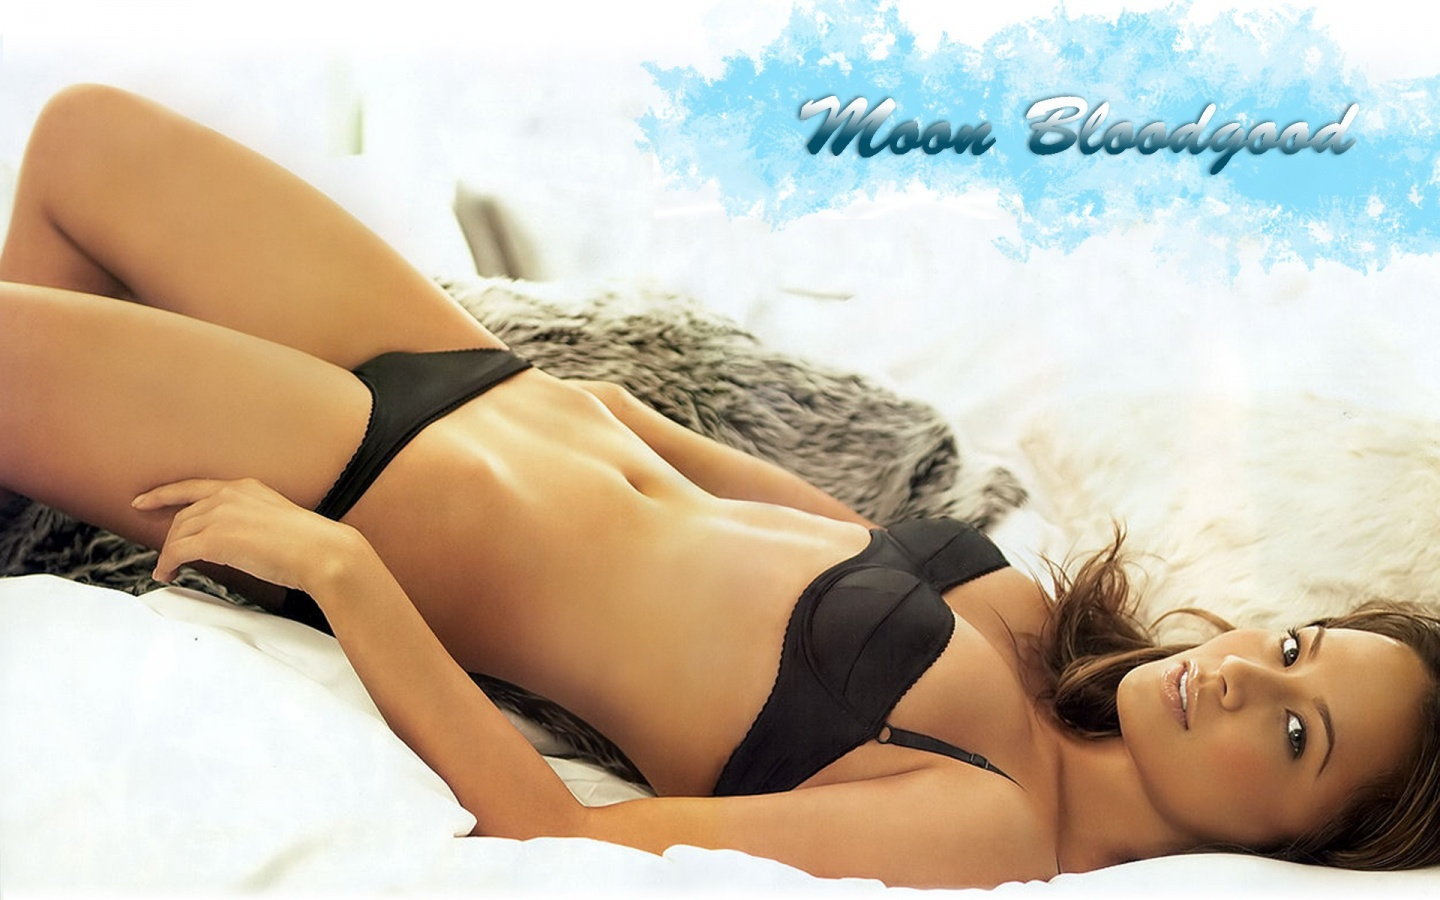 Moon Bloodgood Photos | Tv Series Posters and Cast